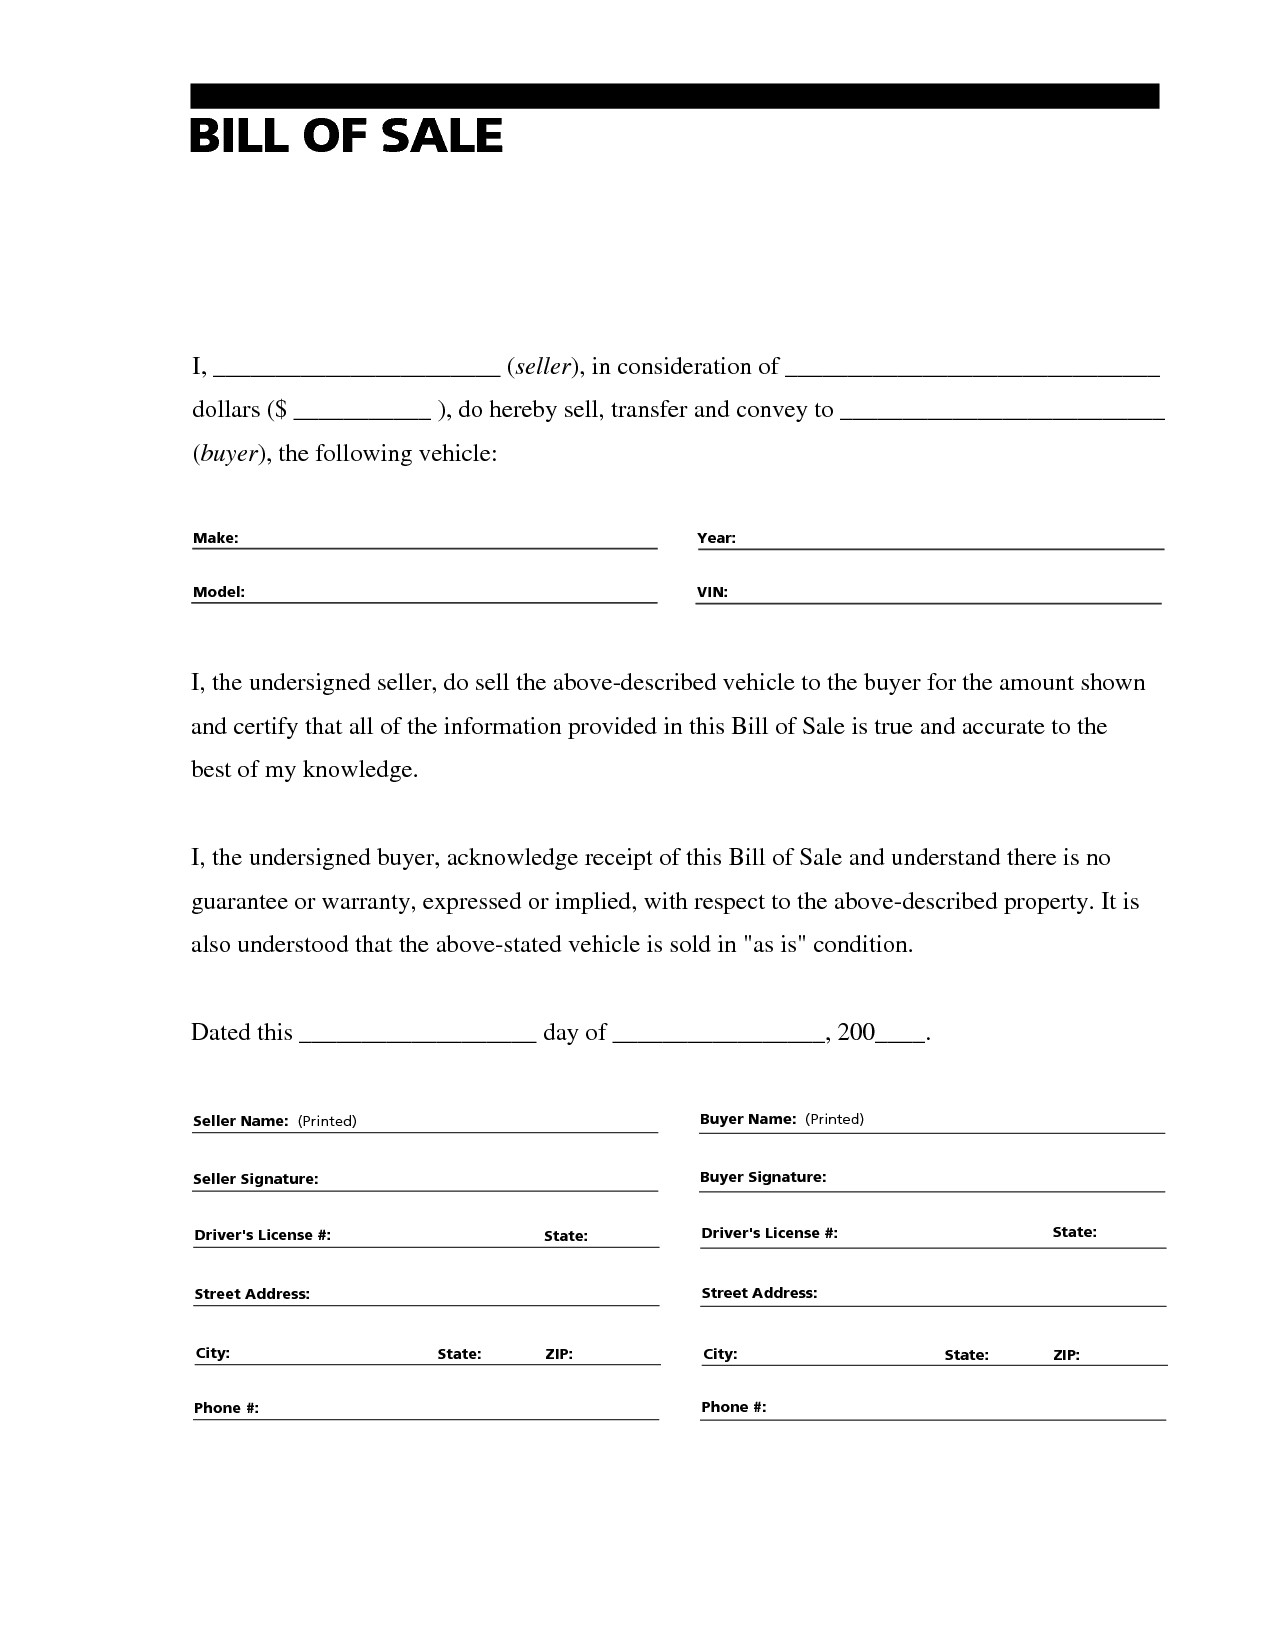 Bill Of Sale Images Free Printable Bill Of Sale for Rv form Generic